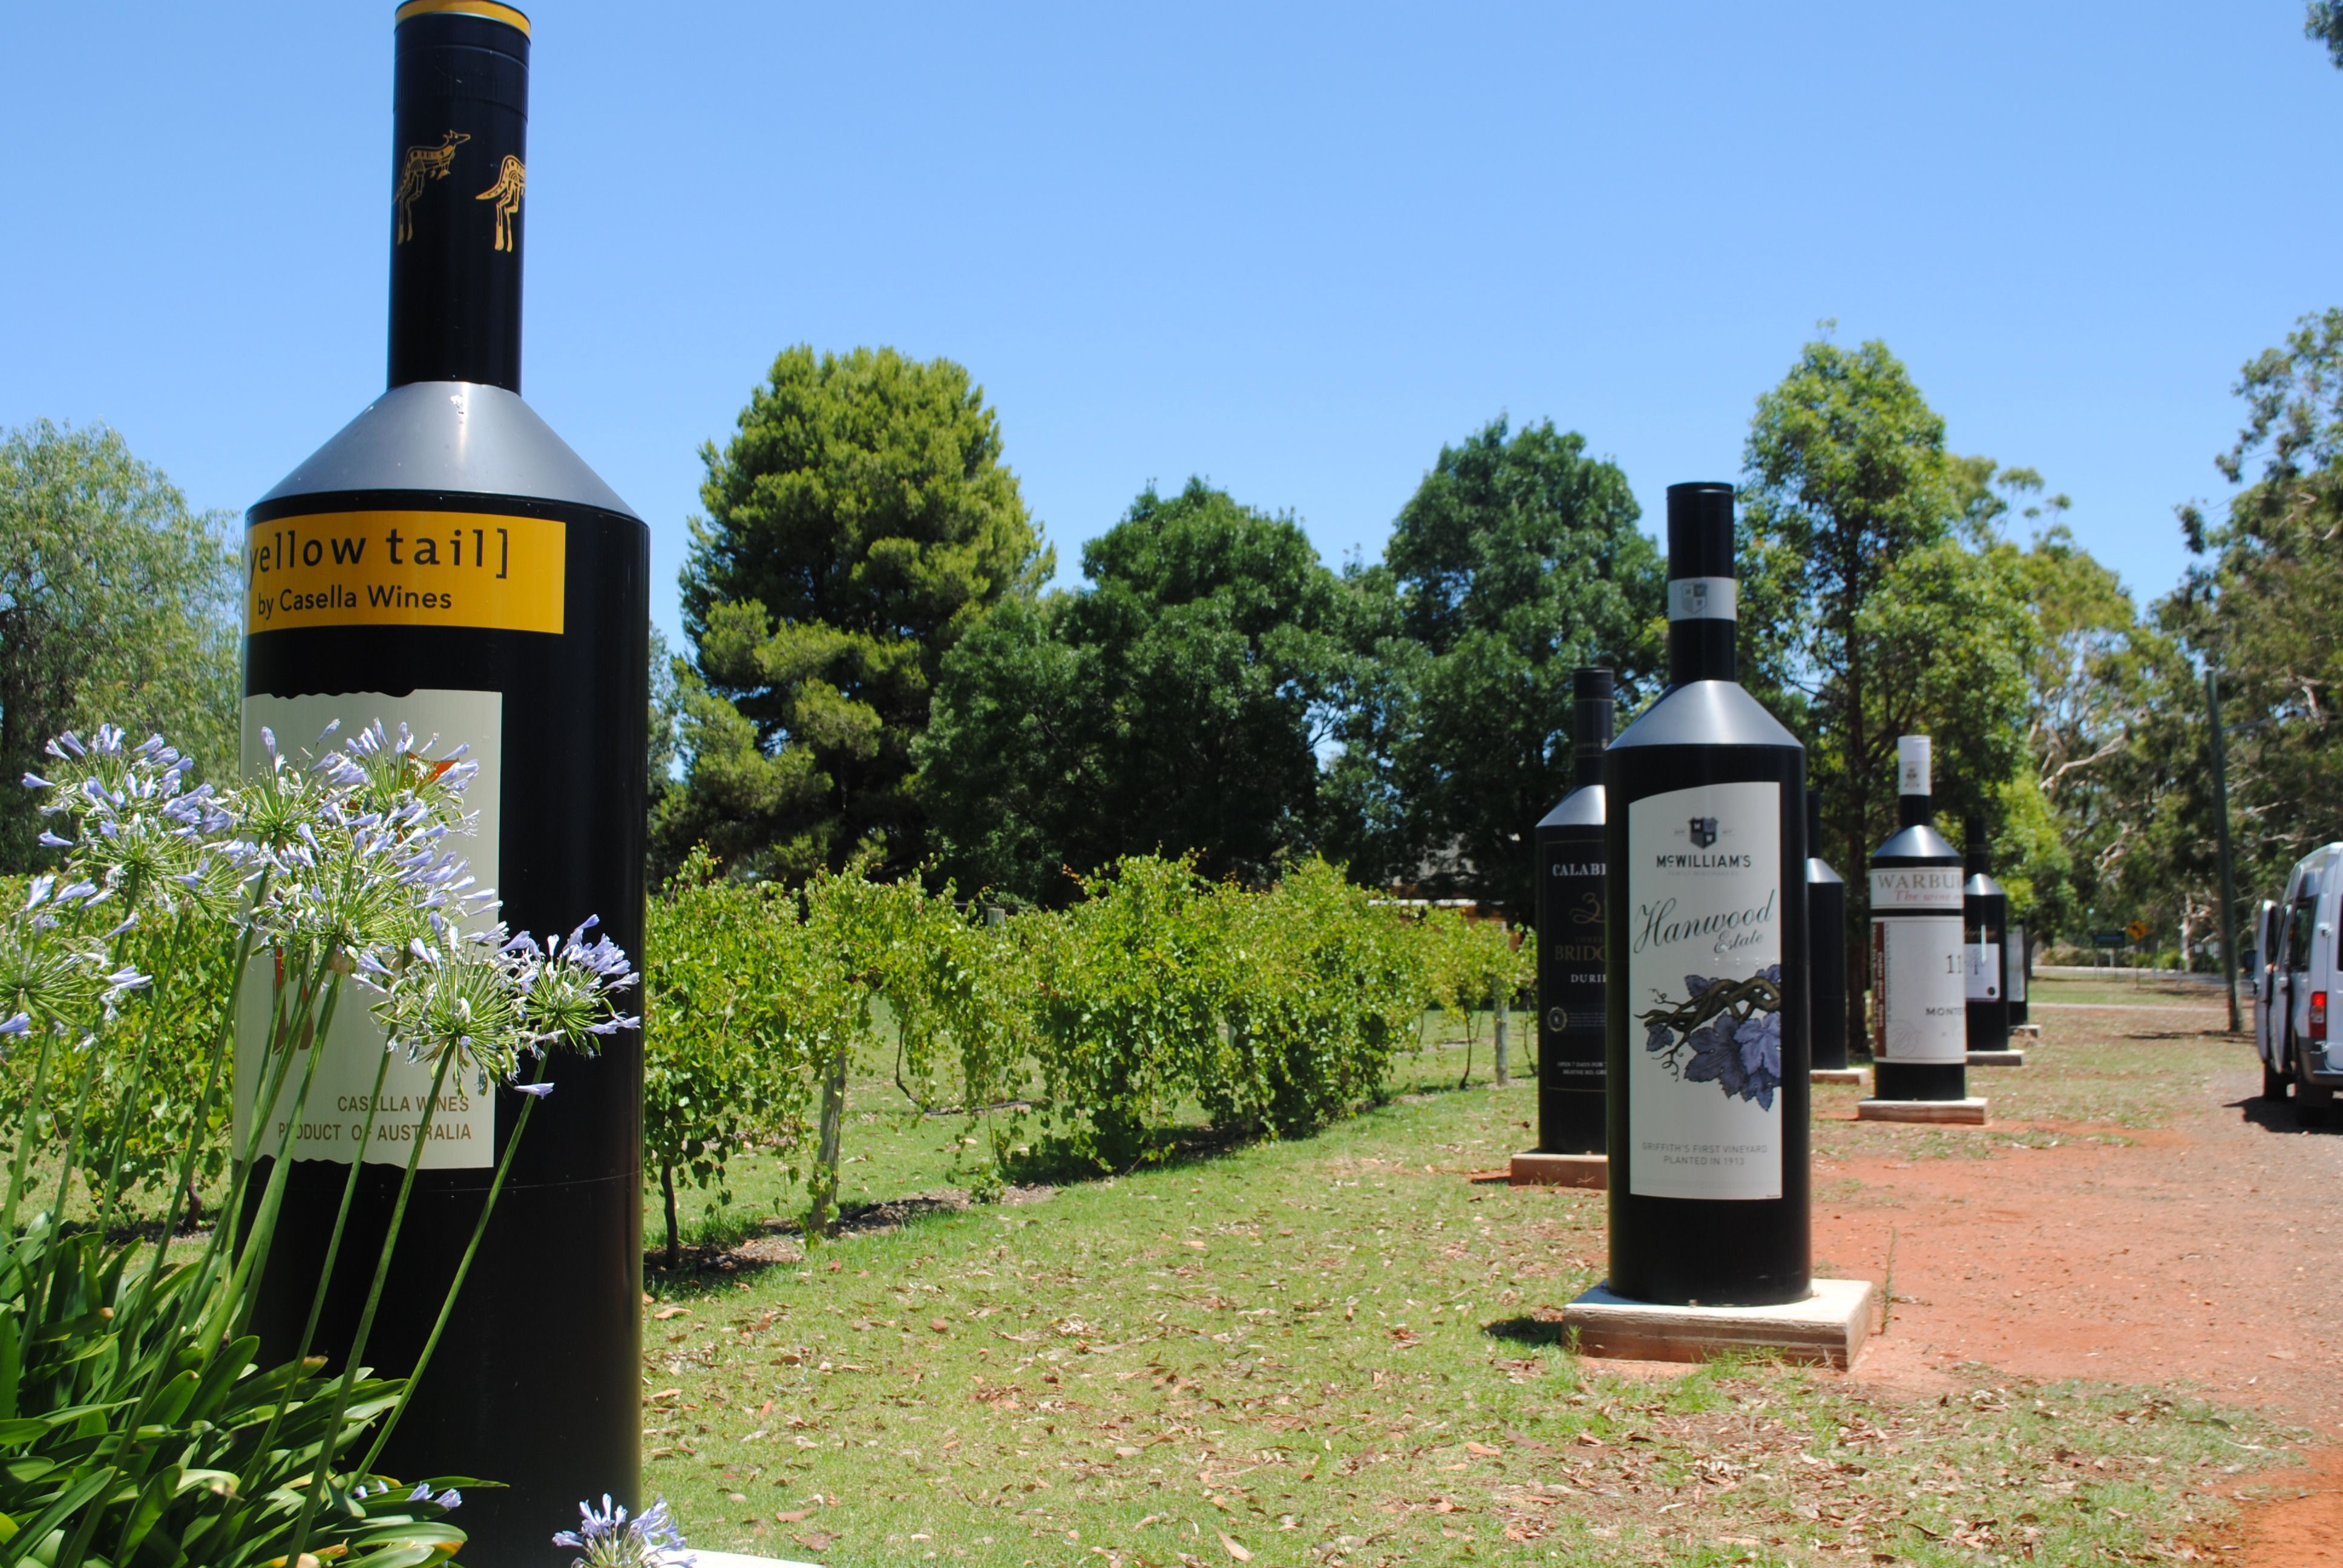 wine bottles in Griffith nsw   big things i have seen in